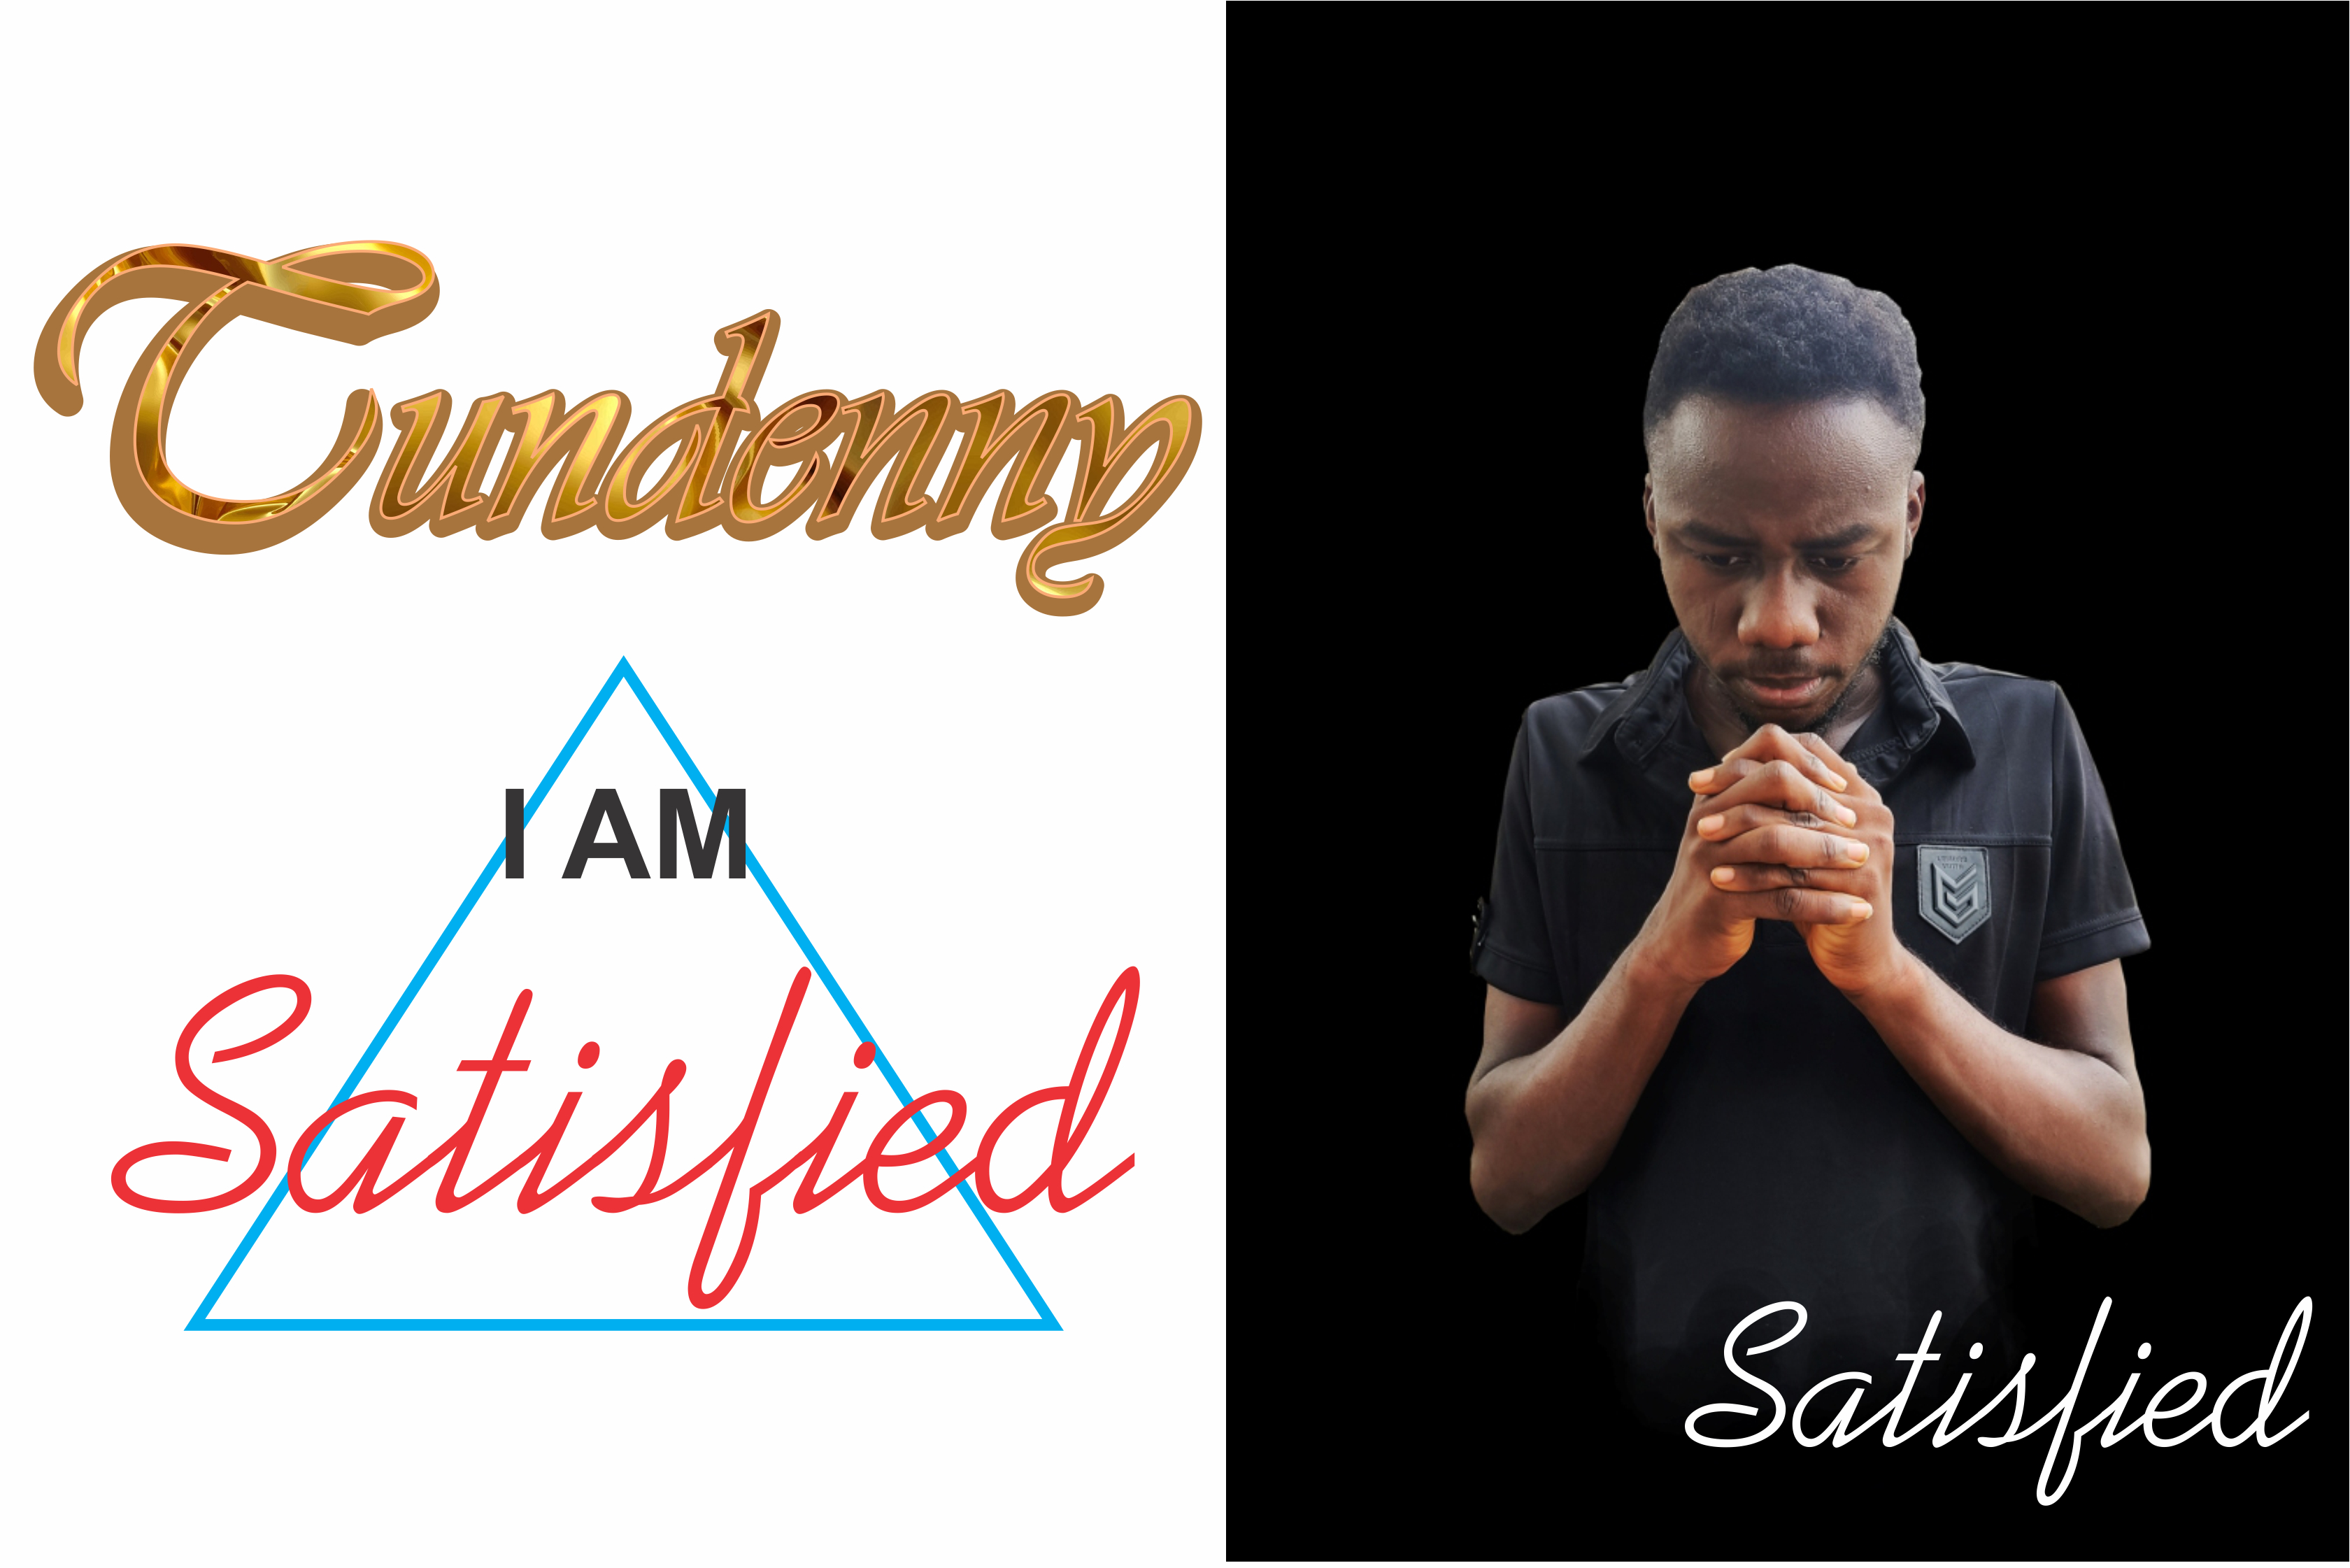 I am Satisfied said by Tundenny